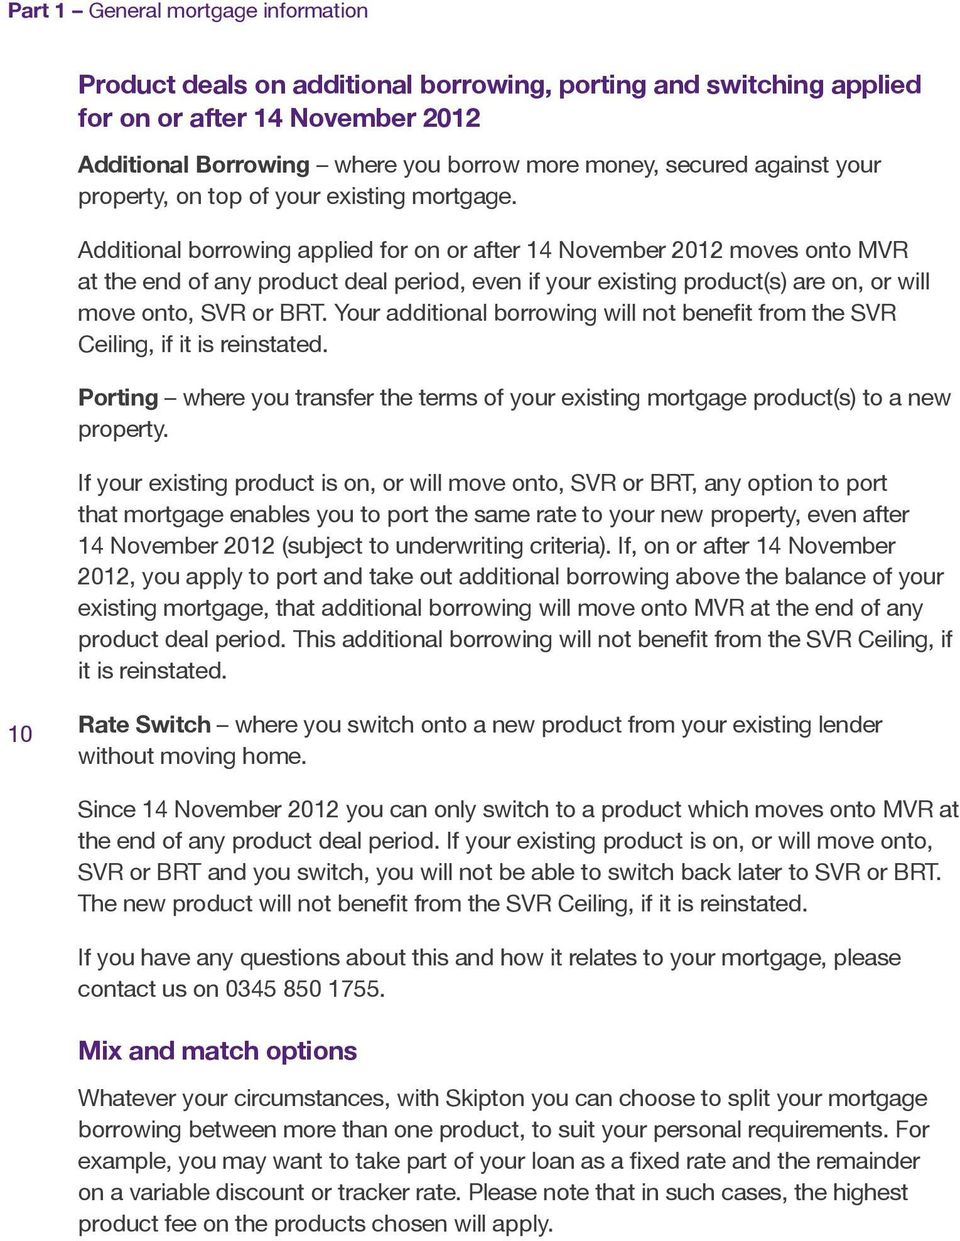 Additional borrowing applied for on or after 14 November 2012 moves onto MVR at the end of any product deal period, even if your existing product(s) are on, or will move onto, SVR or BRT.